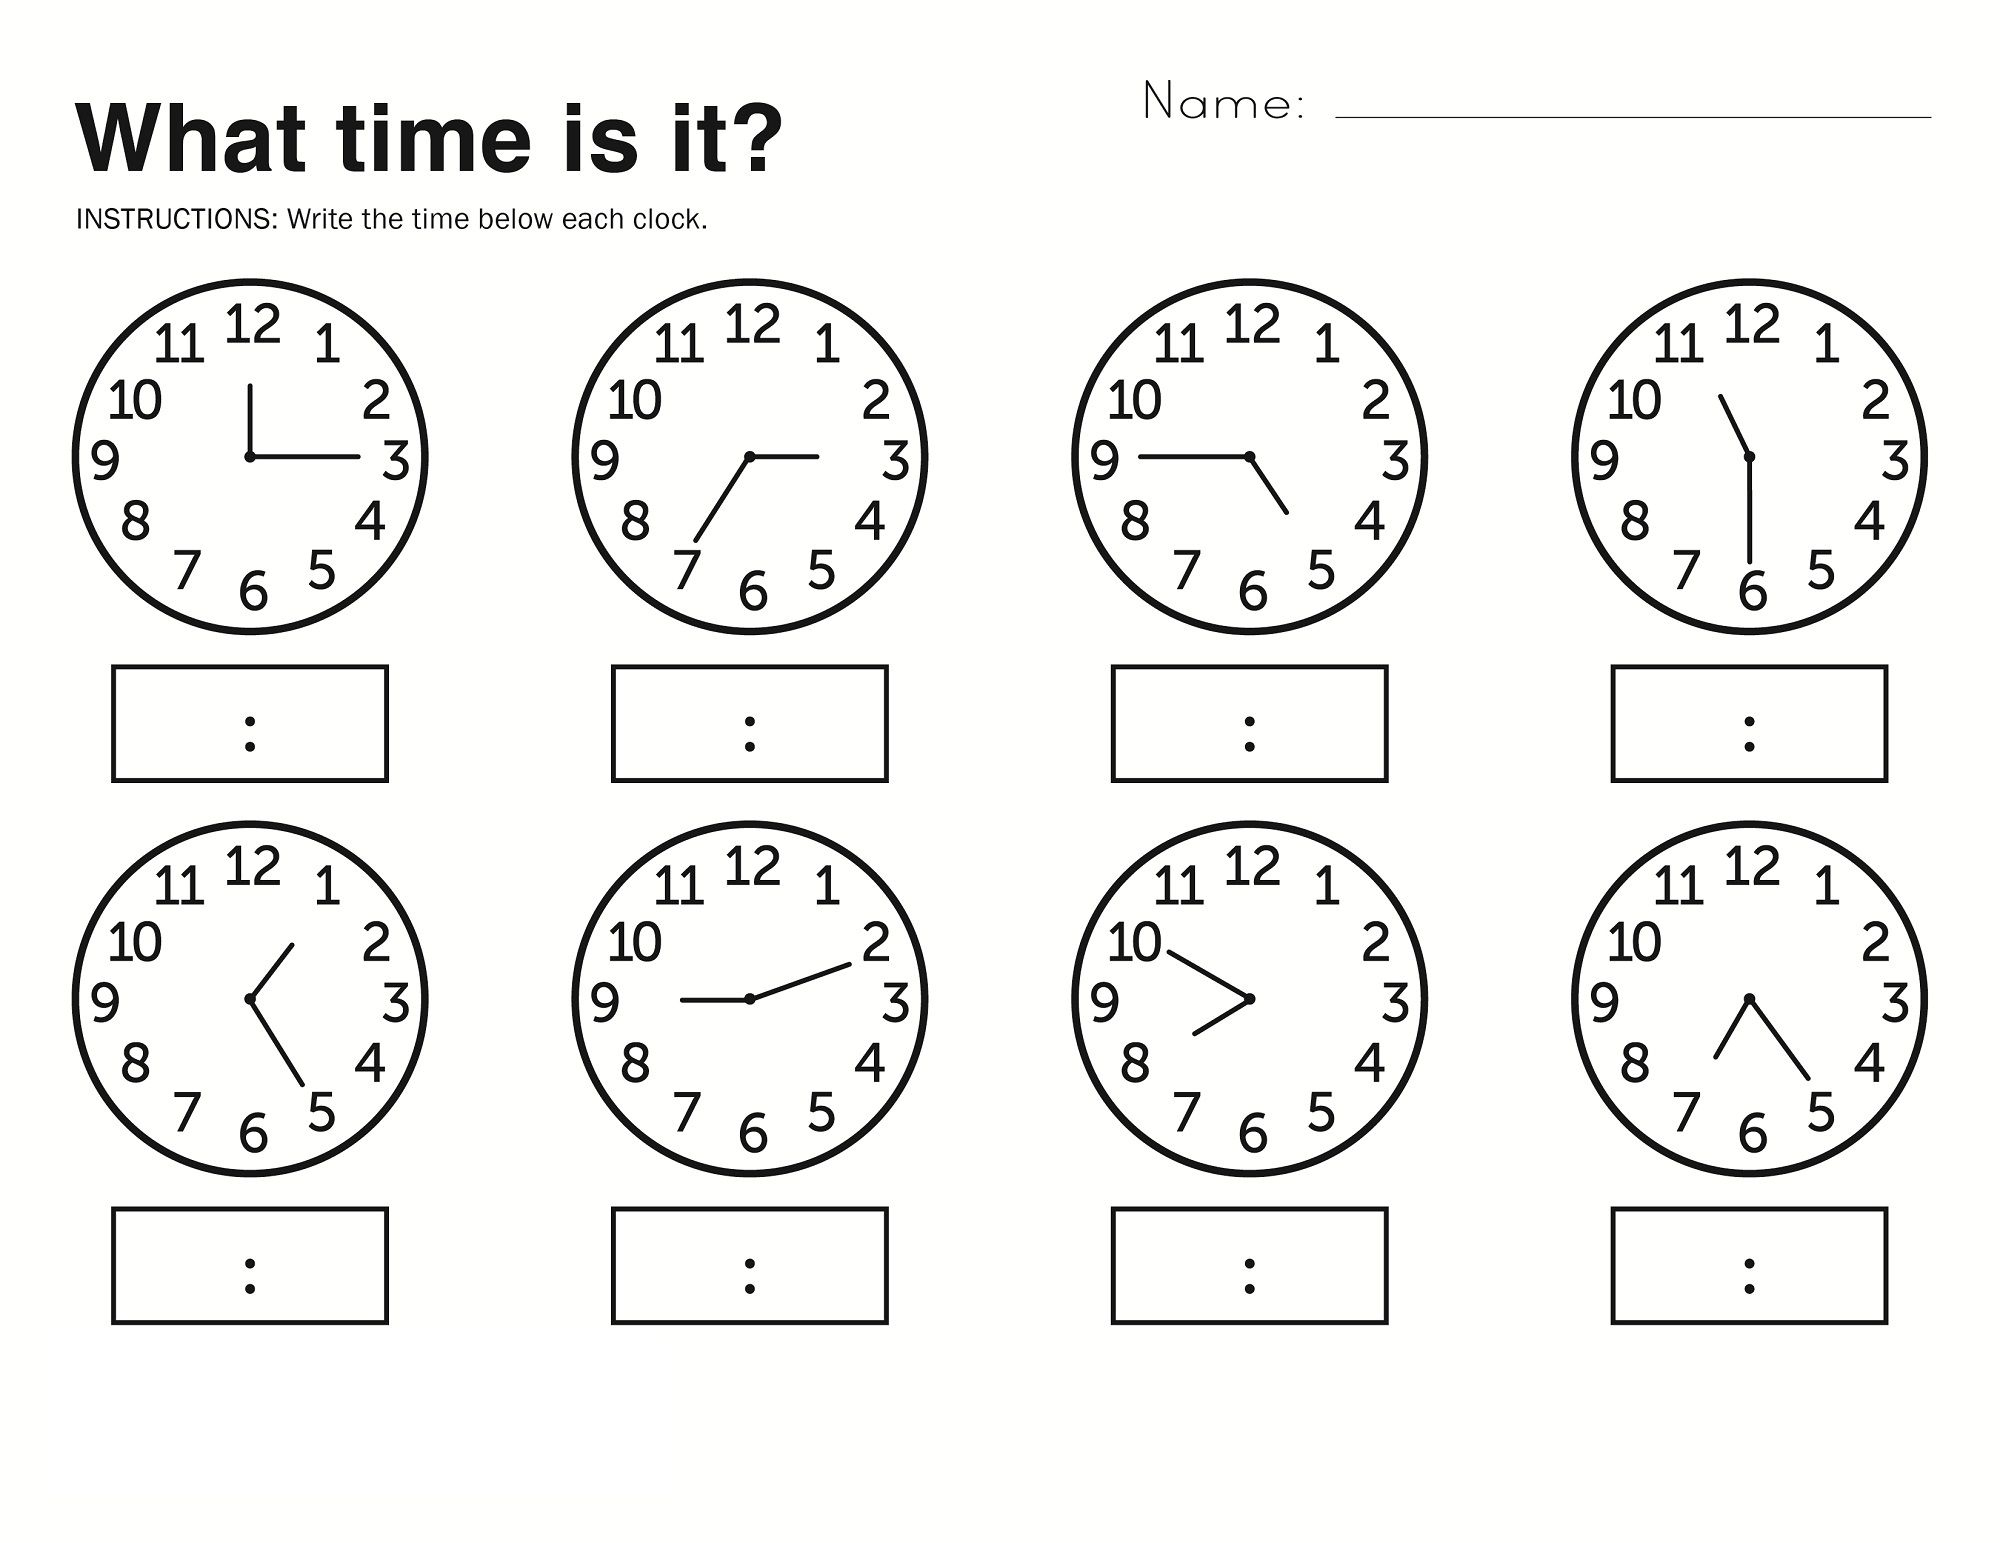 Time Elapsed Worksheets To Print | Kids Worksheets Printable | Learn To Tell The Time Printable Worksheets